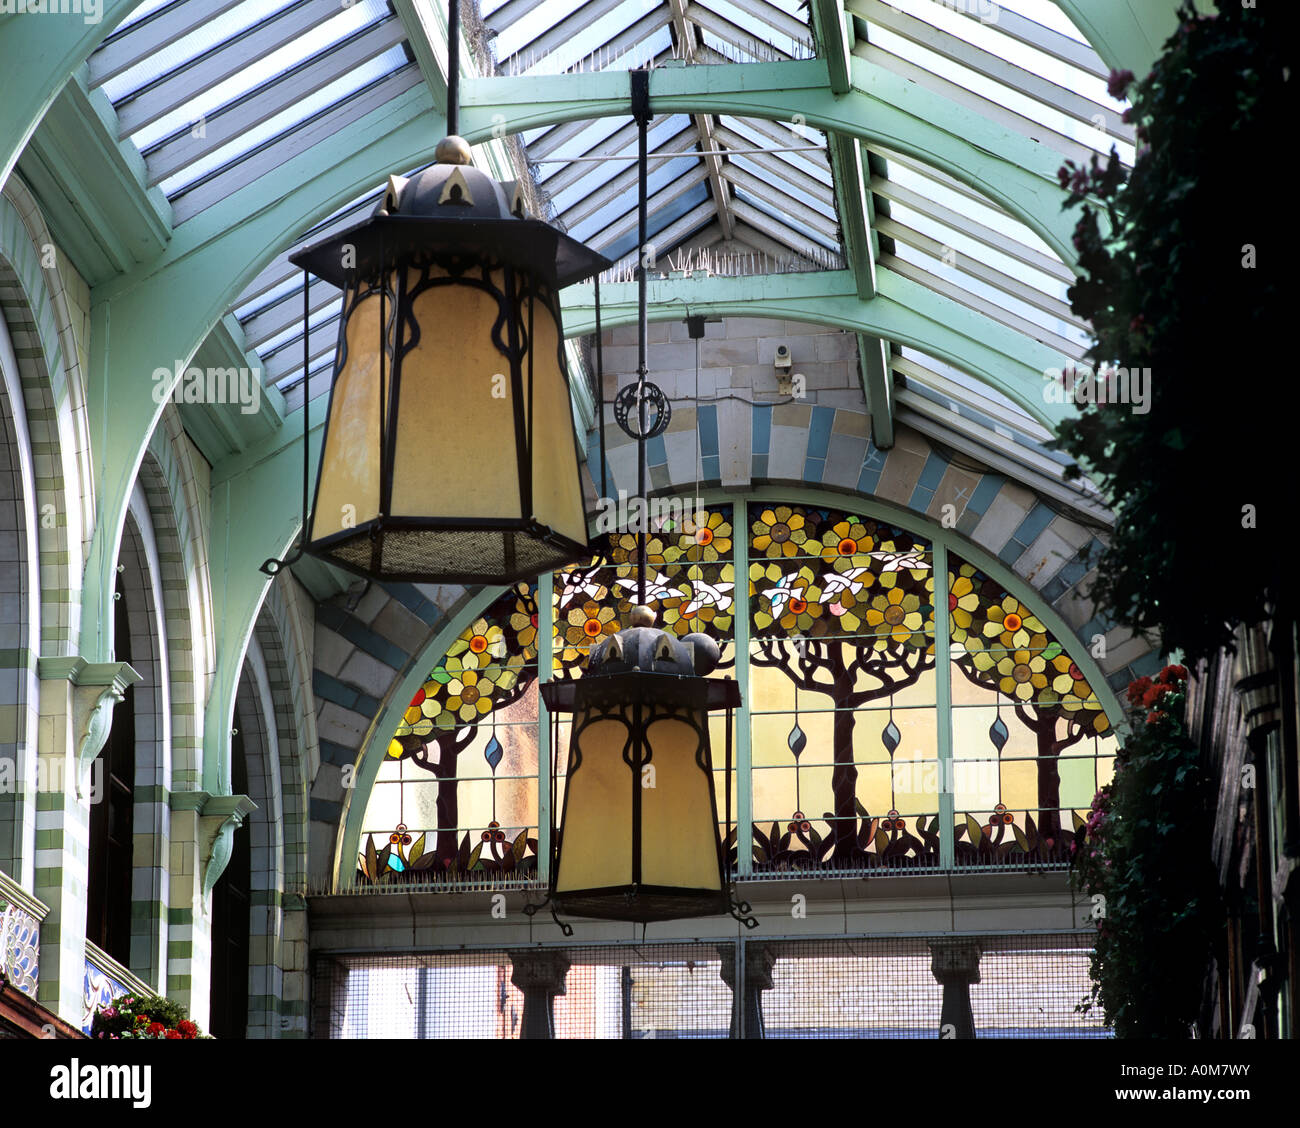 Art Nouveau lamp shades and stained glass window inside the Royal Arcade, Norwich city centre, Norfolk. Stock Photo